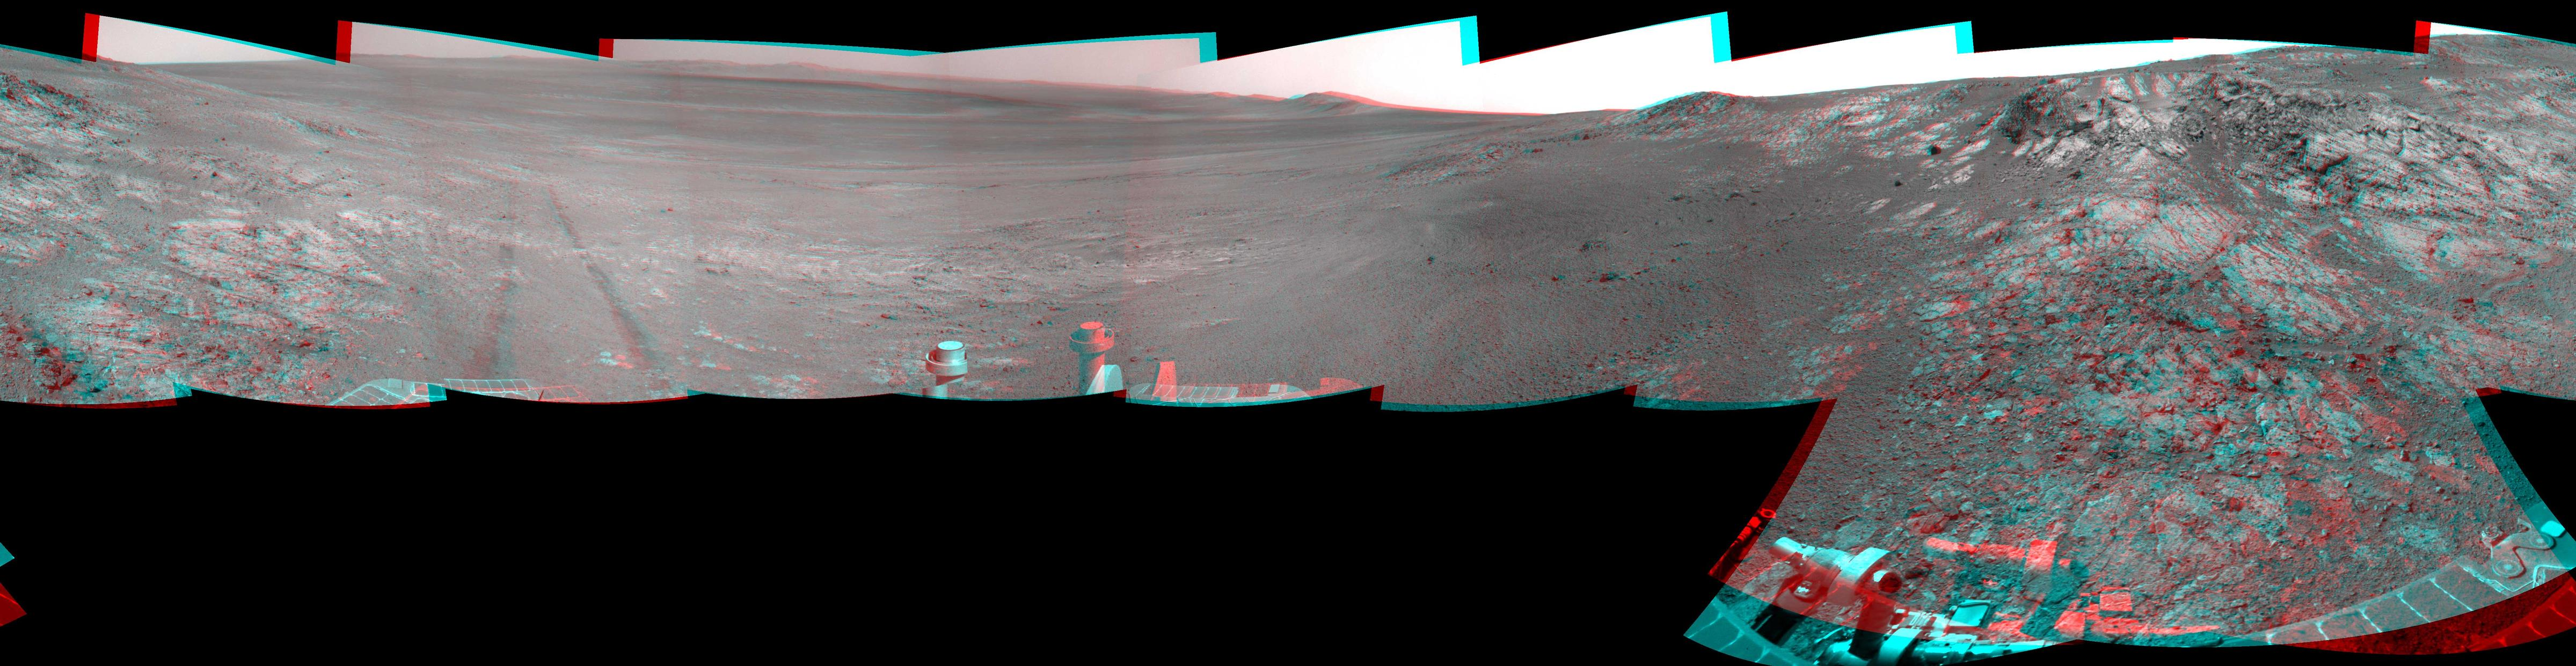 This full-circle, stereo panorama shows the terrain around the NASA Mars Exploration Rover Opportunity during the 3,105th Martian day, or sol, of the rover's work on Mars (Oct. 18, 2012).